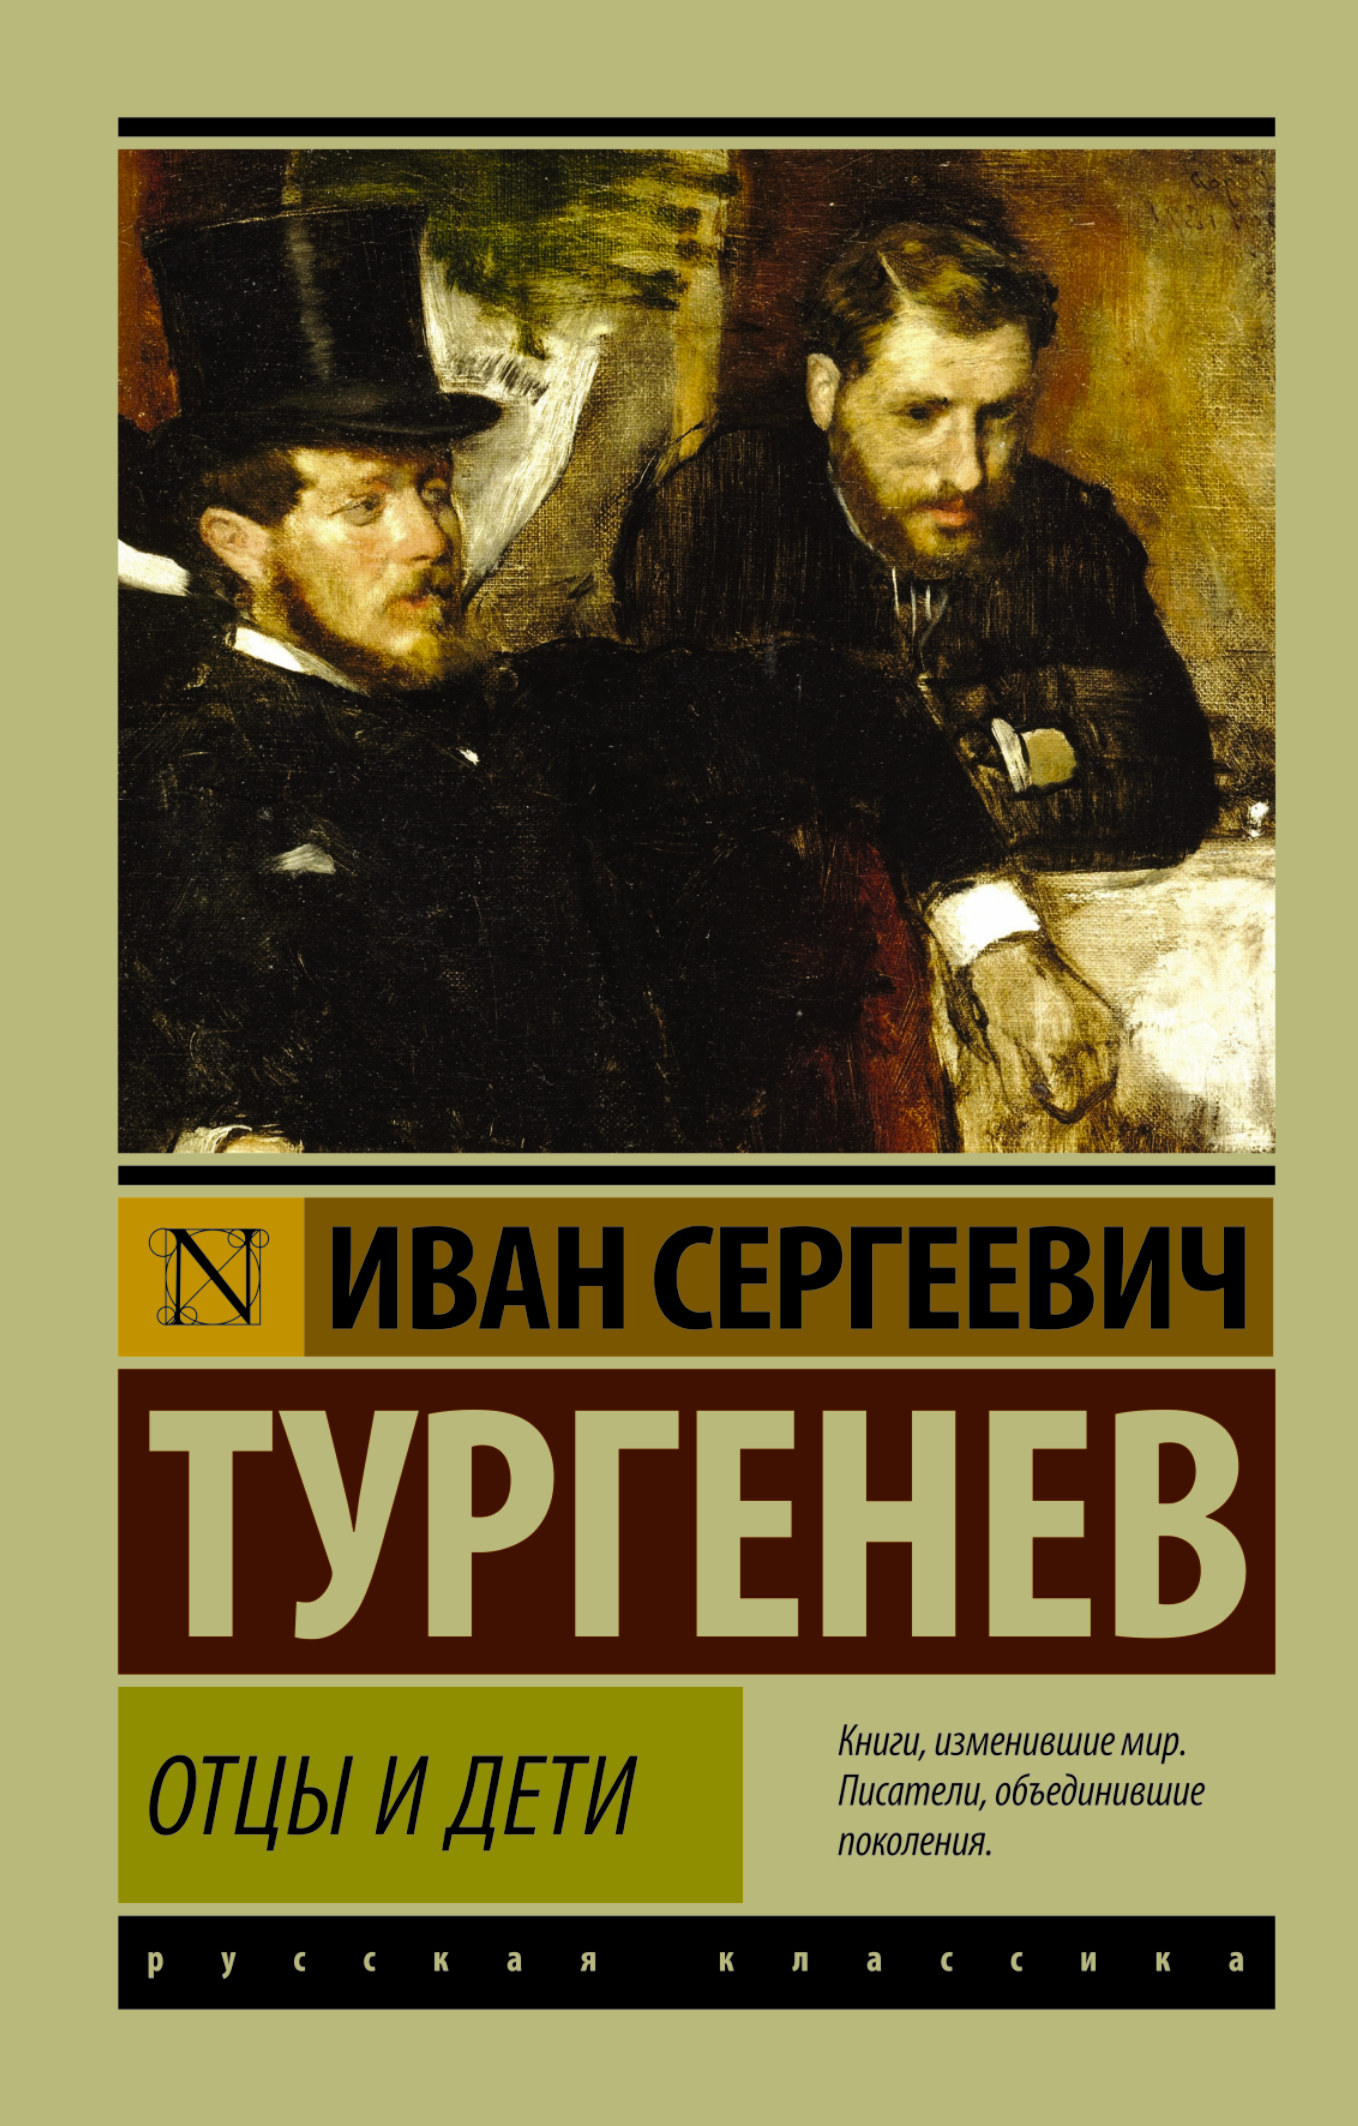 Ivan Turgenev: Life and Quotes